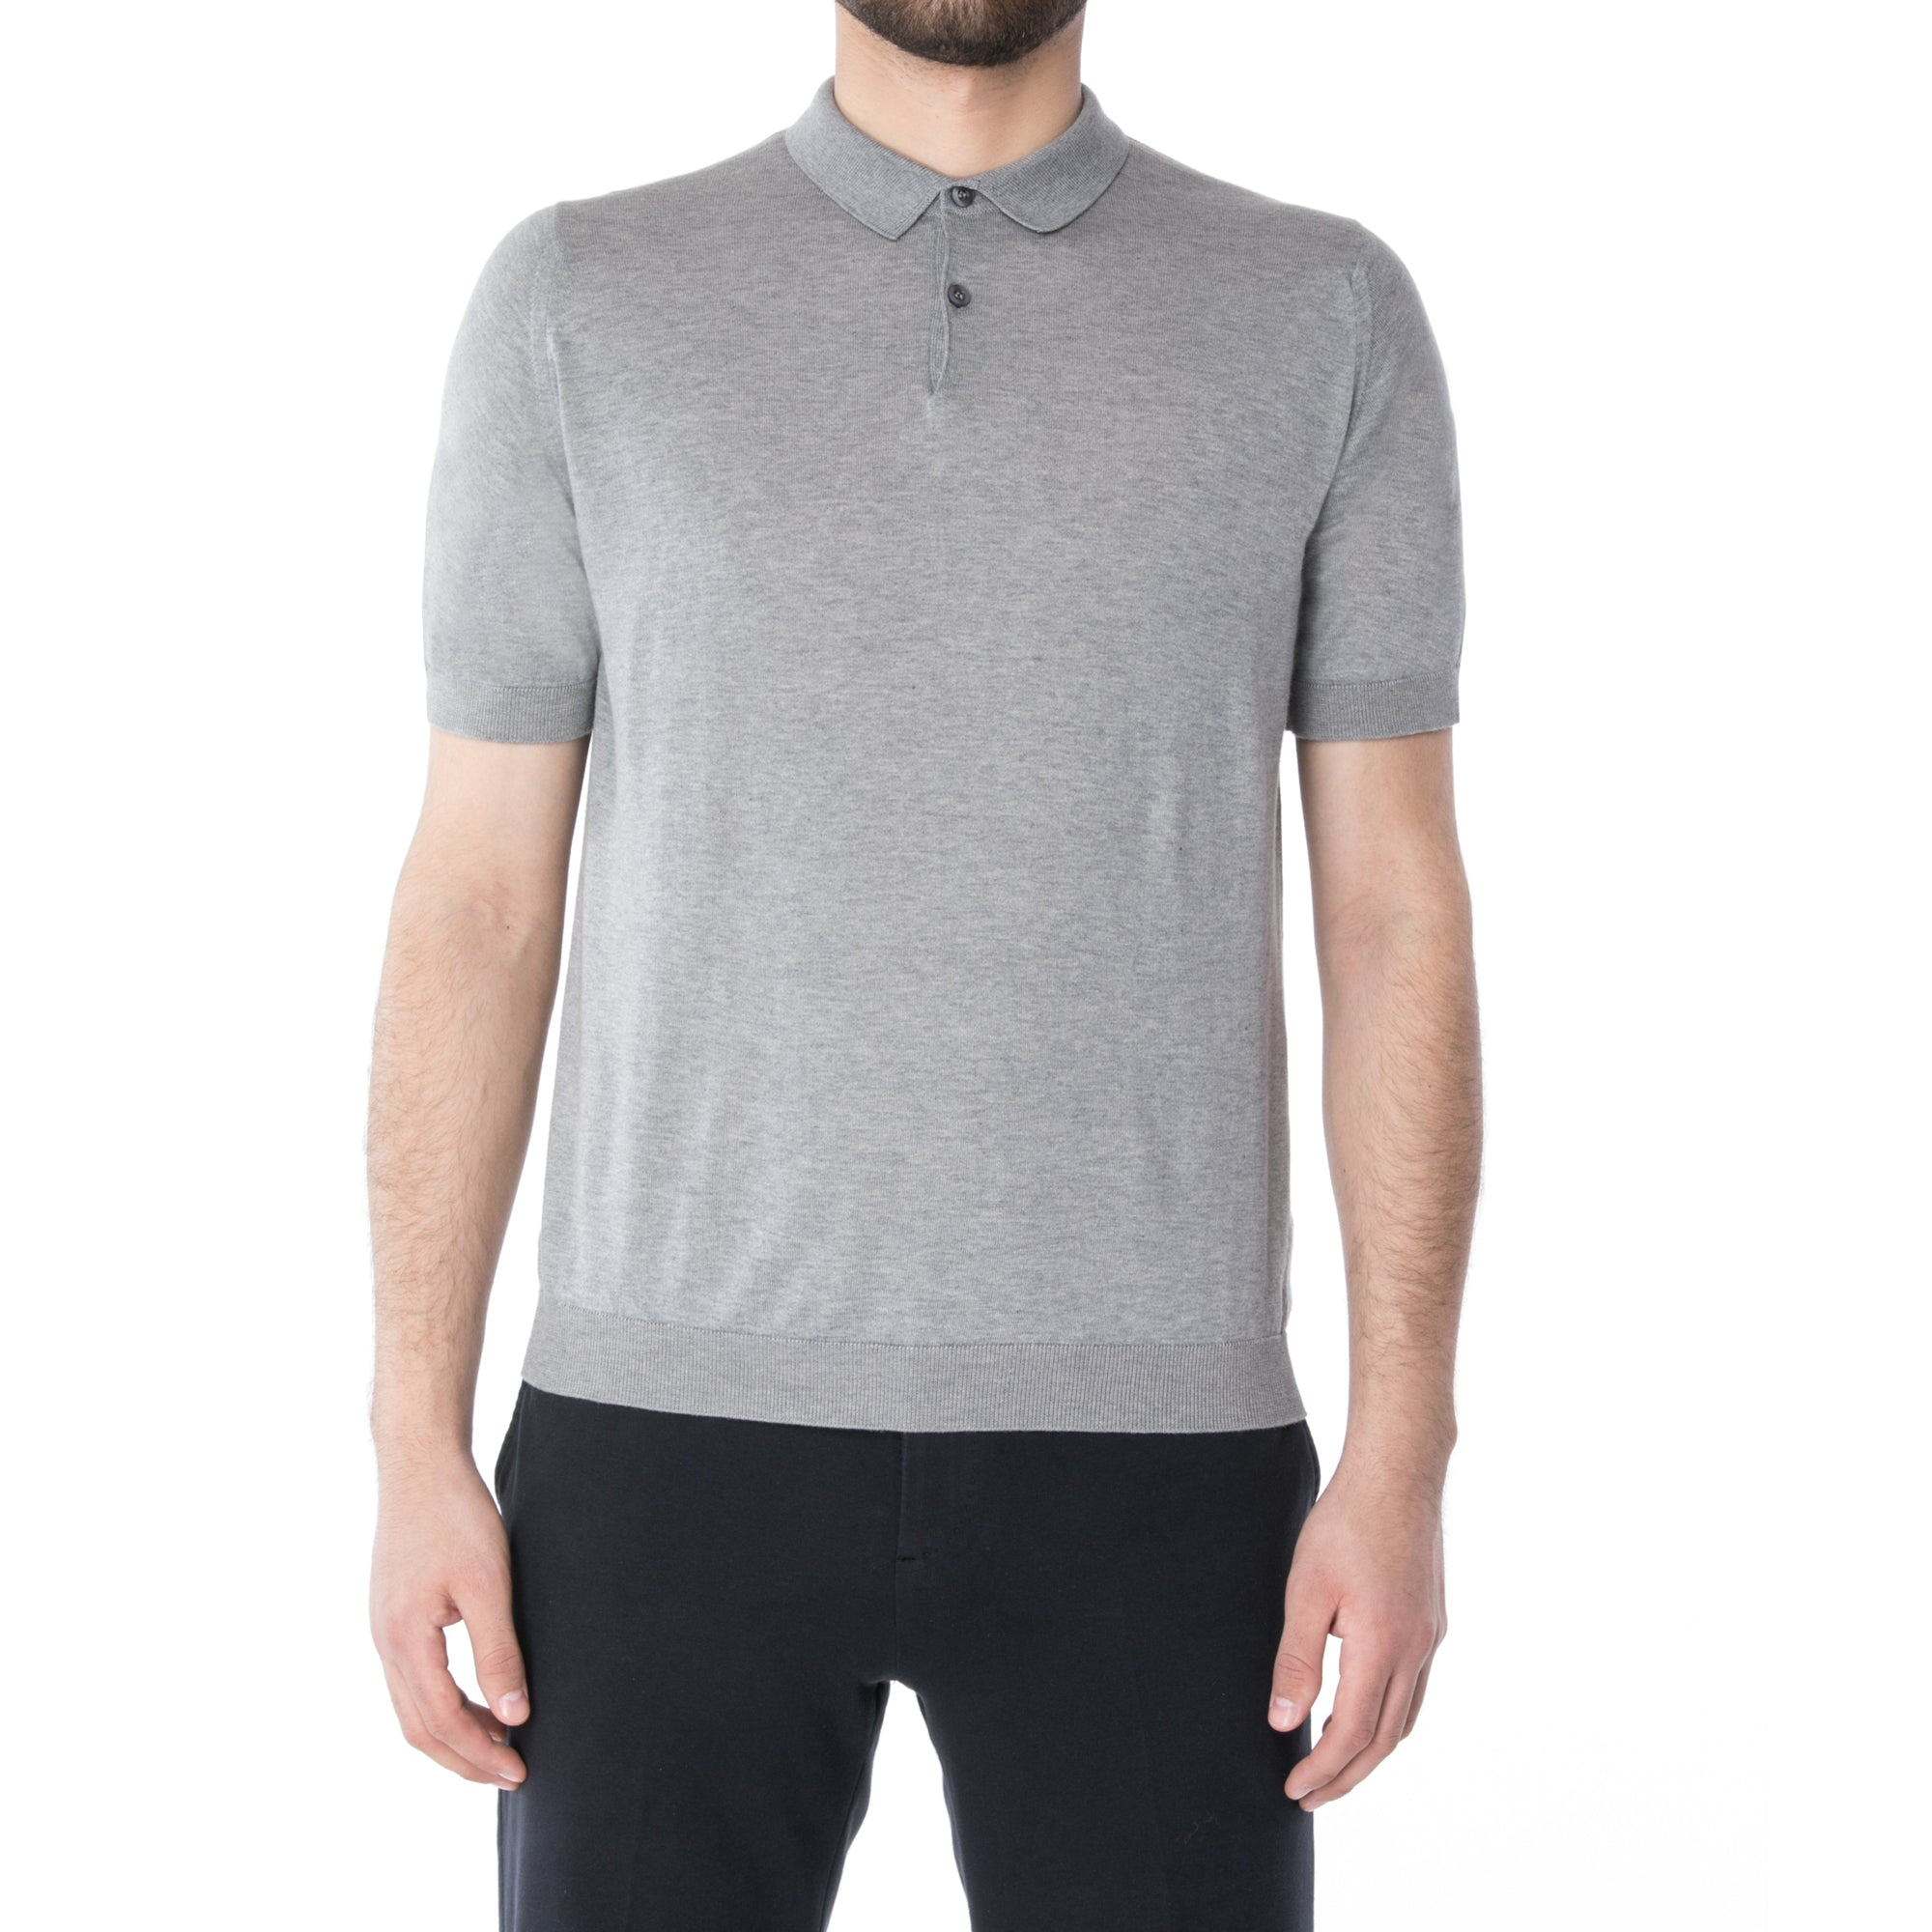 Silver Sea Island Cotton Short Sleeve Polo